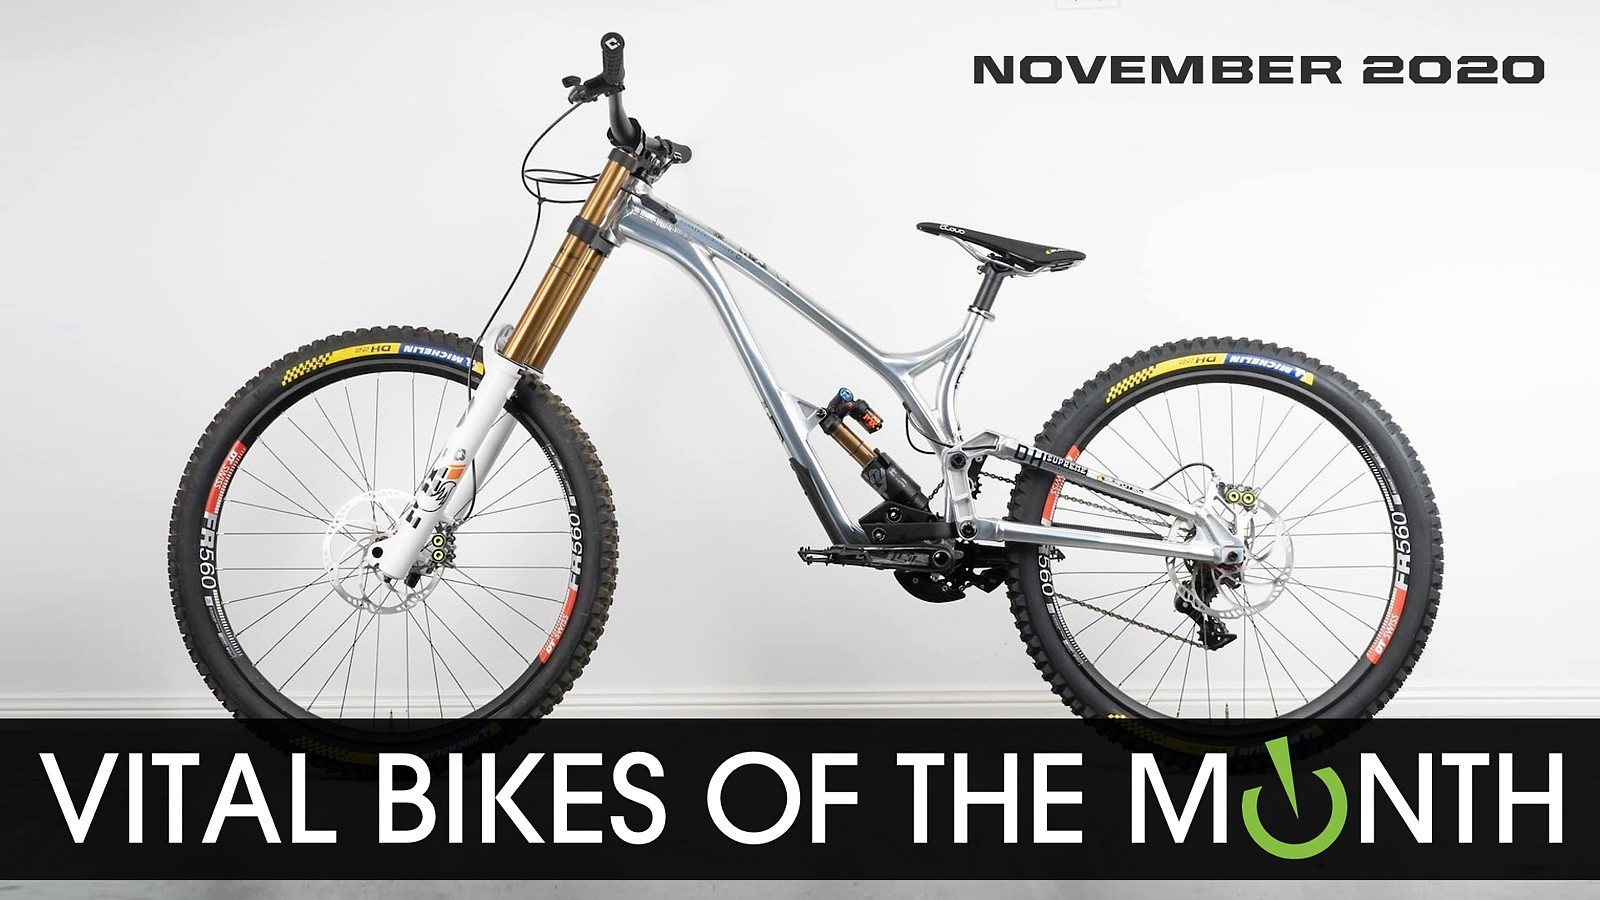 Vital Bikes of the Month, November 2020 - Vital Bike of the Day November 2020 - Mountain Biking Pictures - Vital MTB